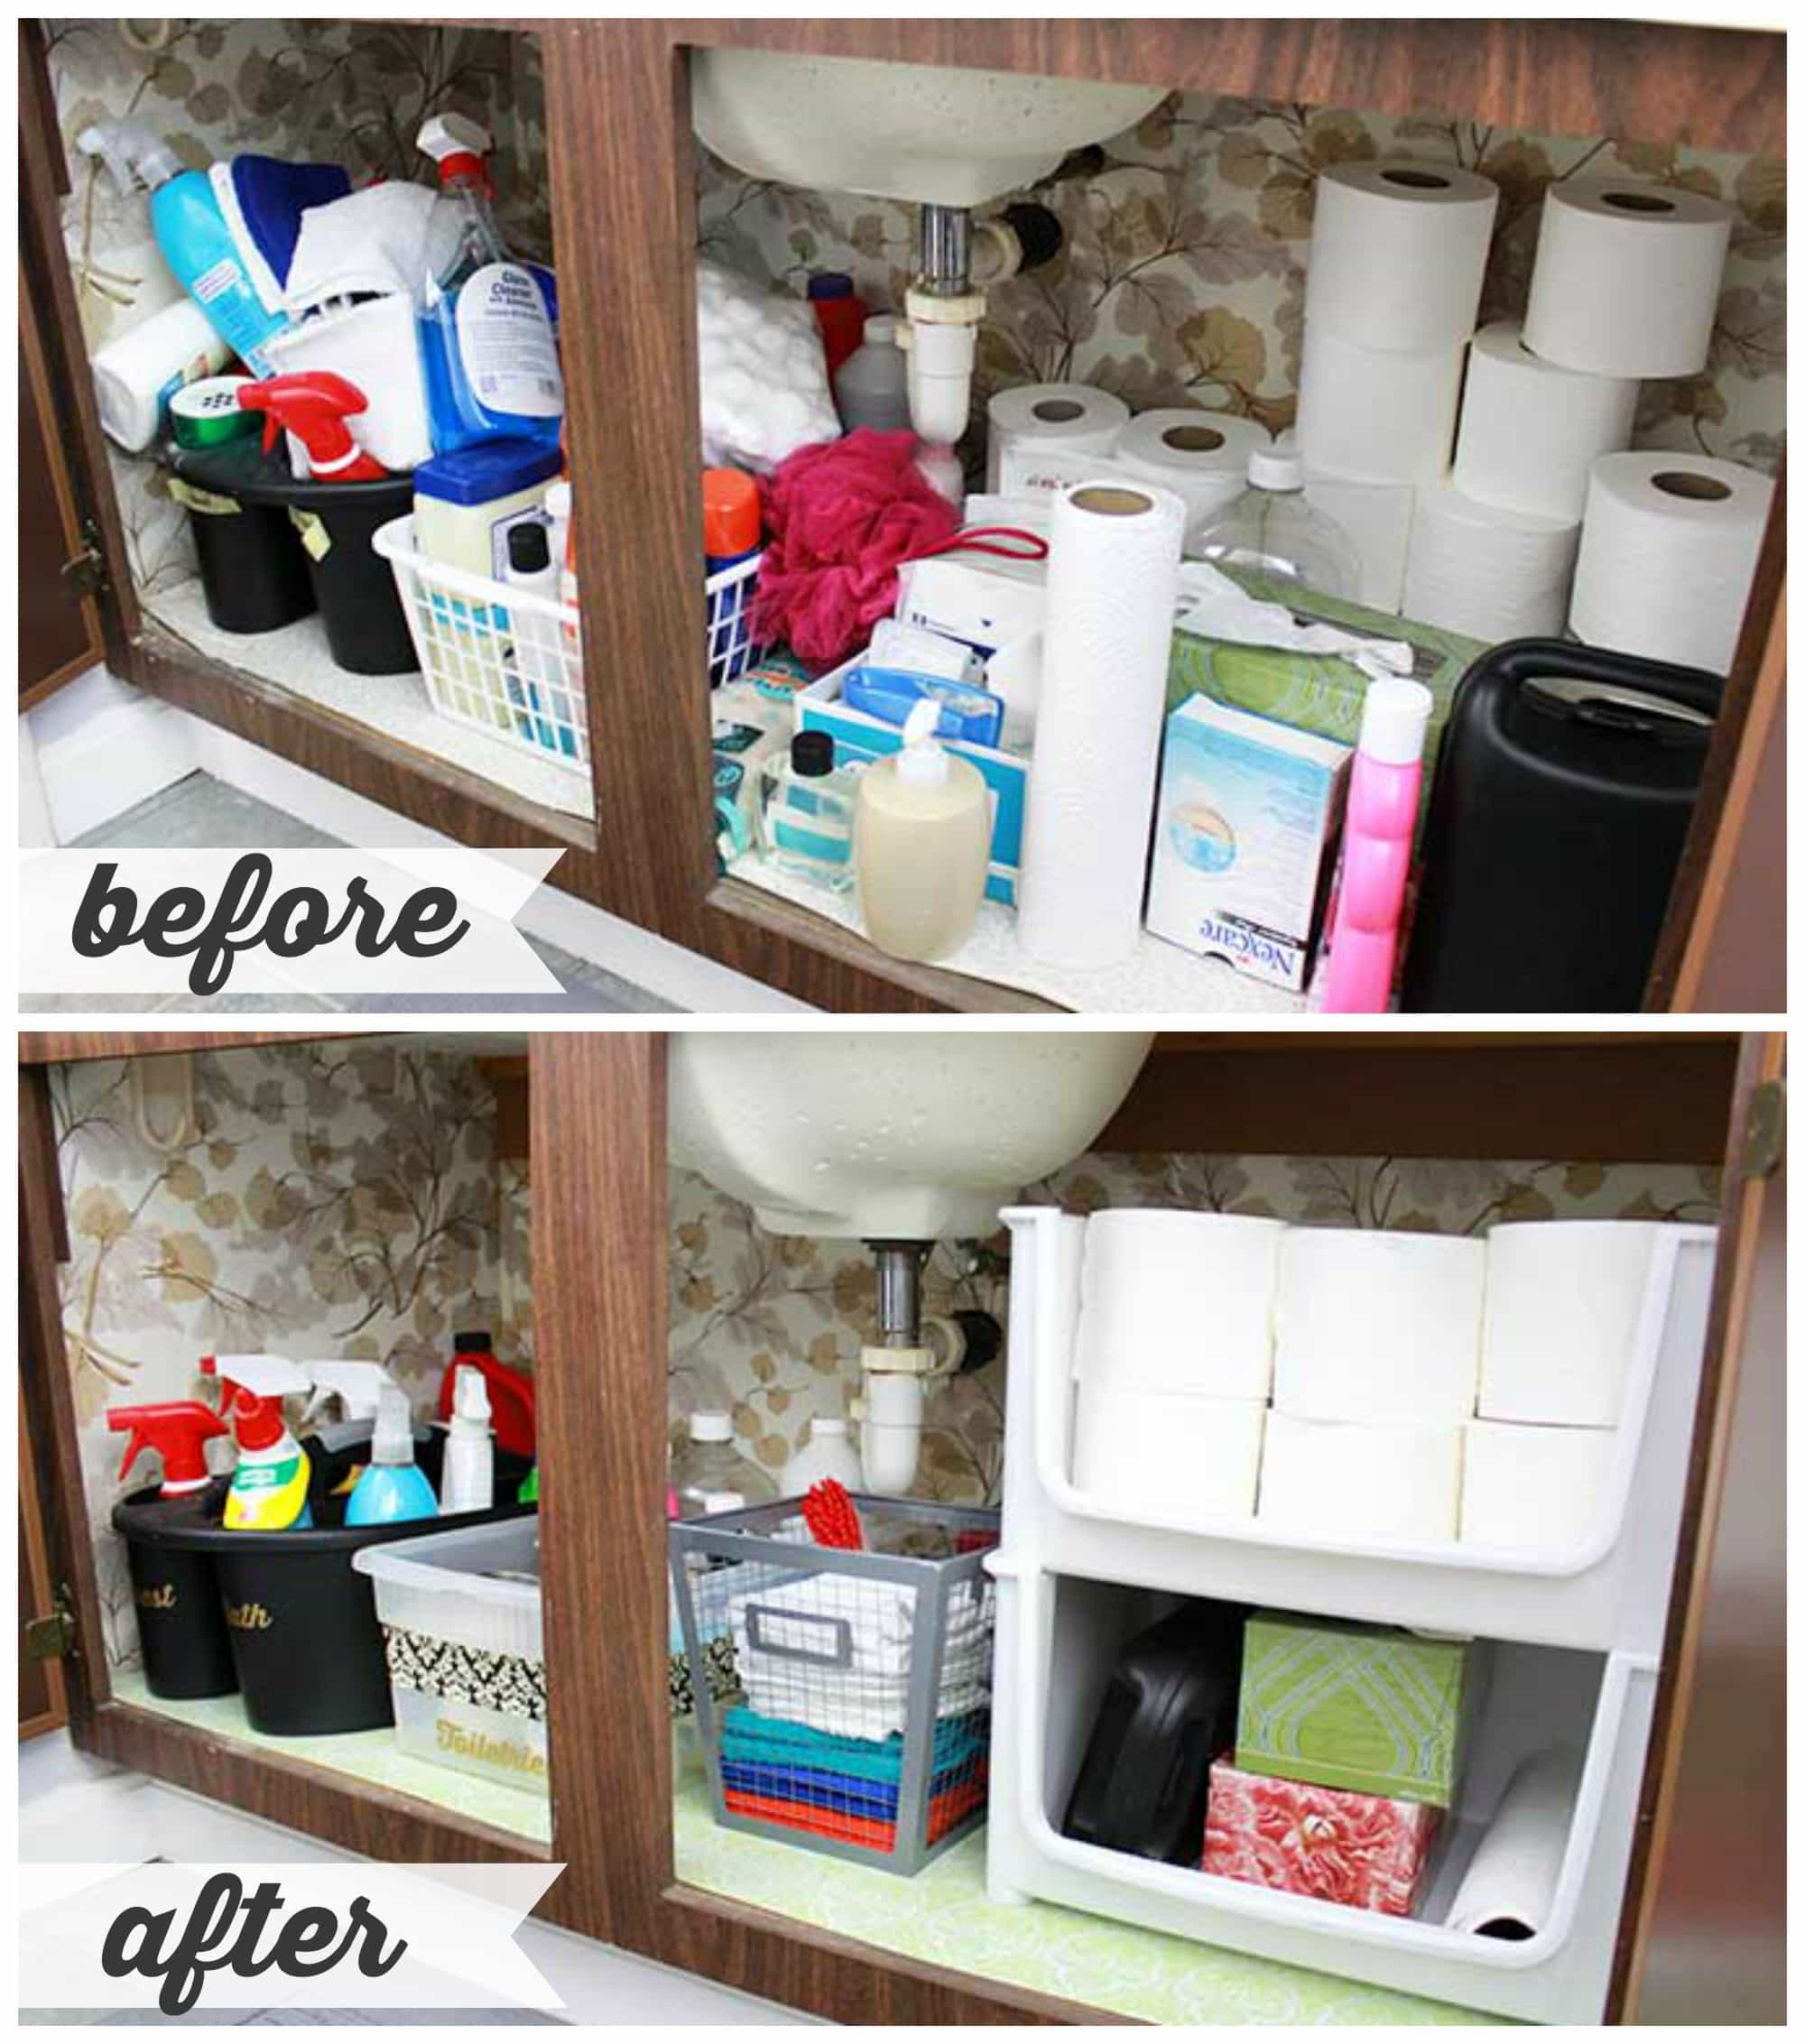 highlow bathroom cabinet organization justagirlandherblogcom